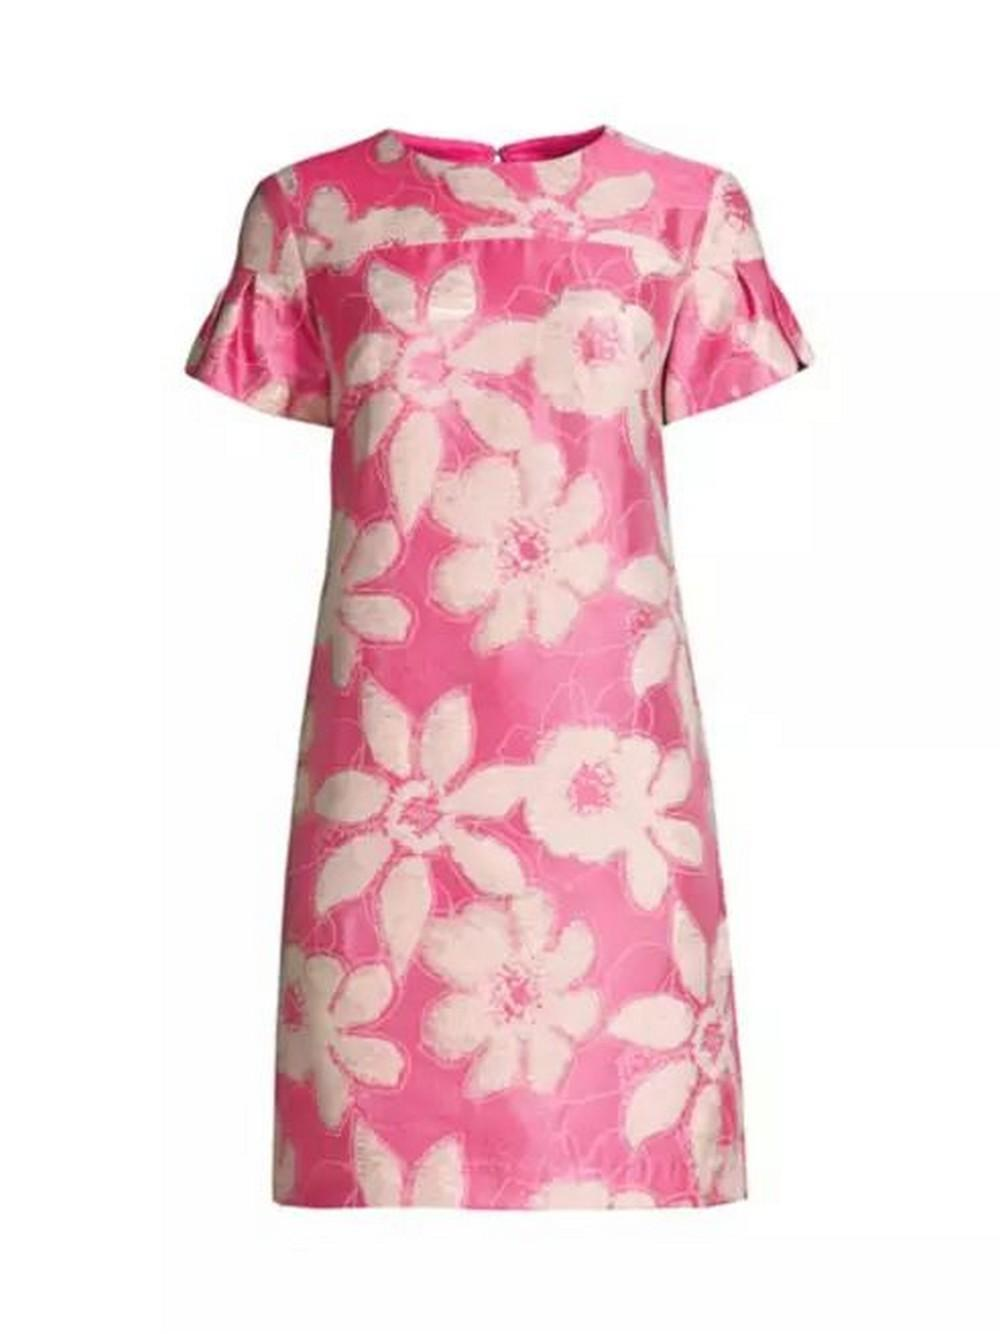 Jacinta Floral Print Dress Item # 2001317JQ1